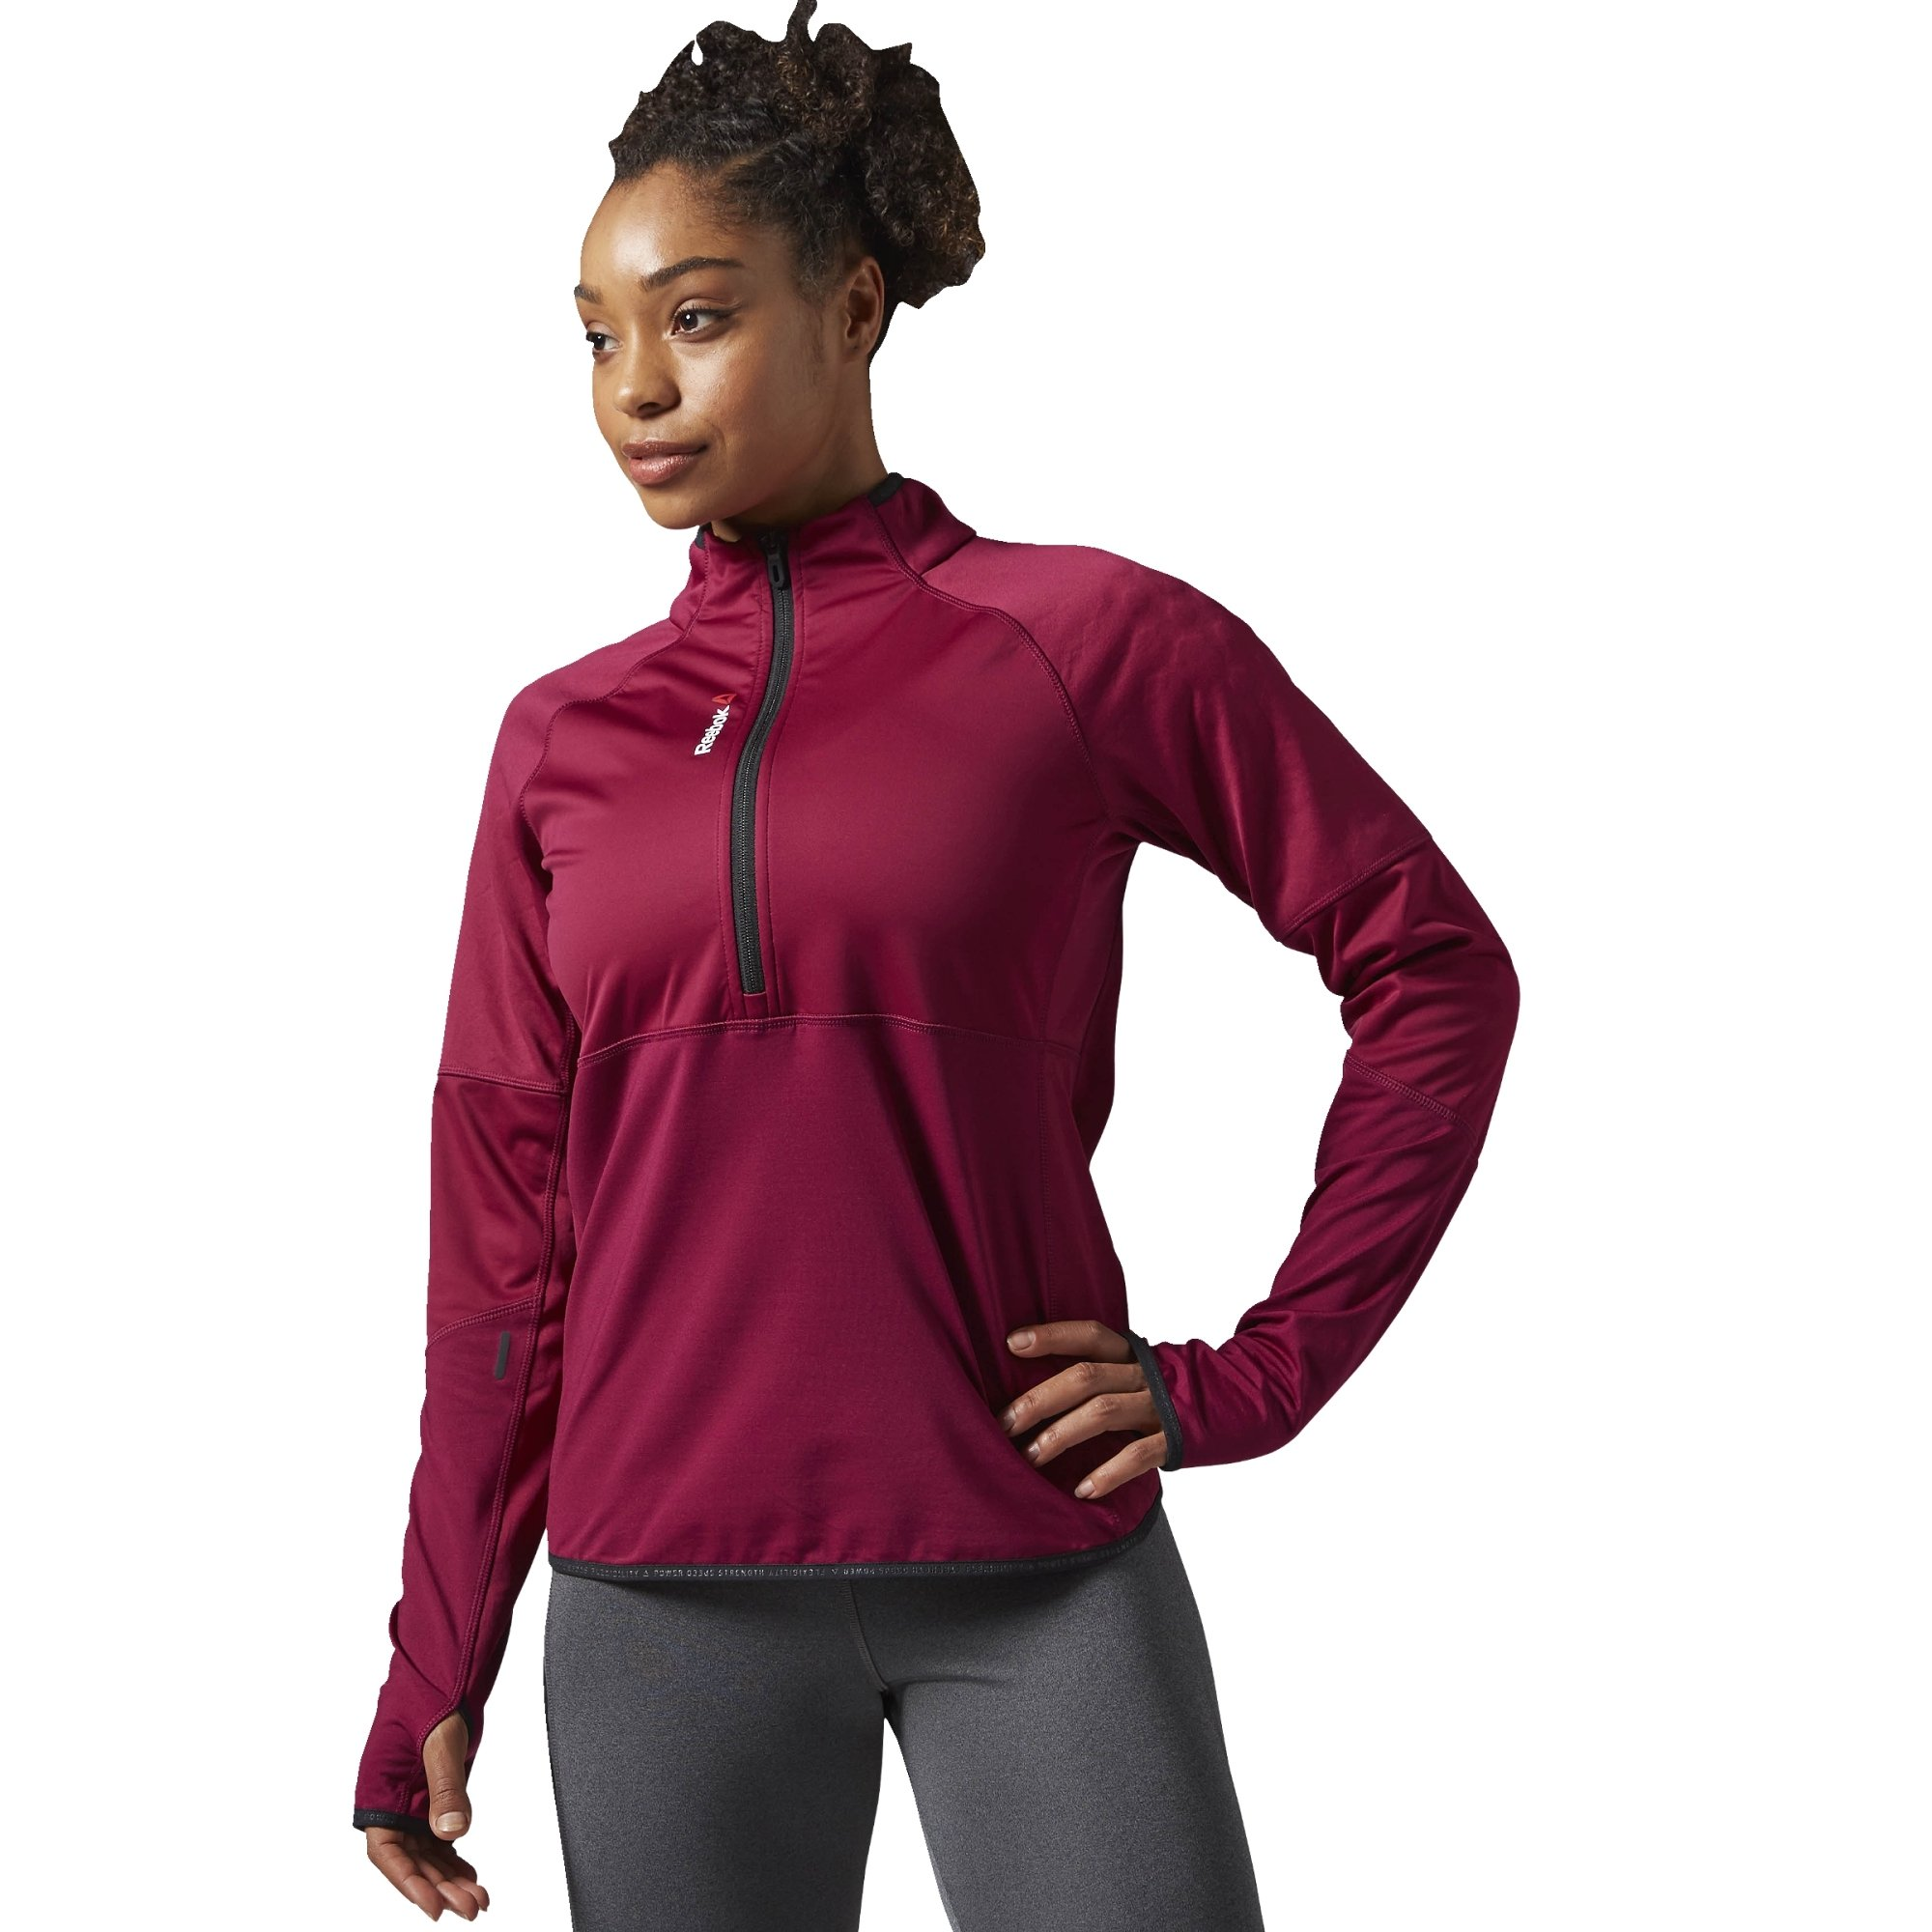 Reebok Women's Hex Thermal Quarter Zip Jacket